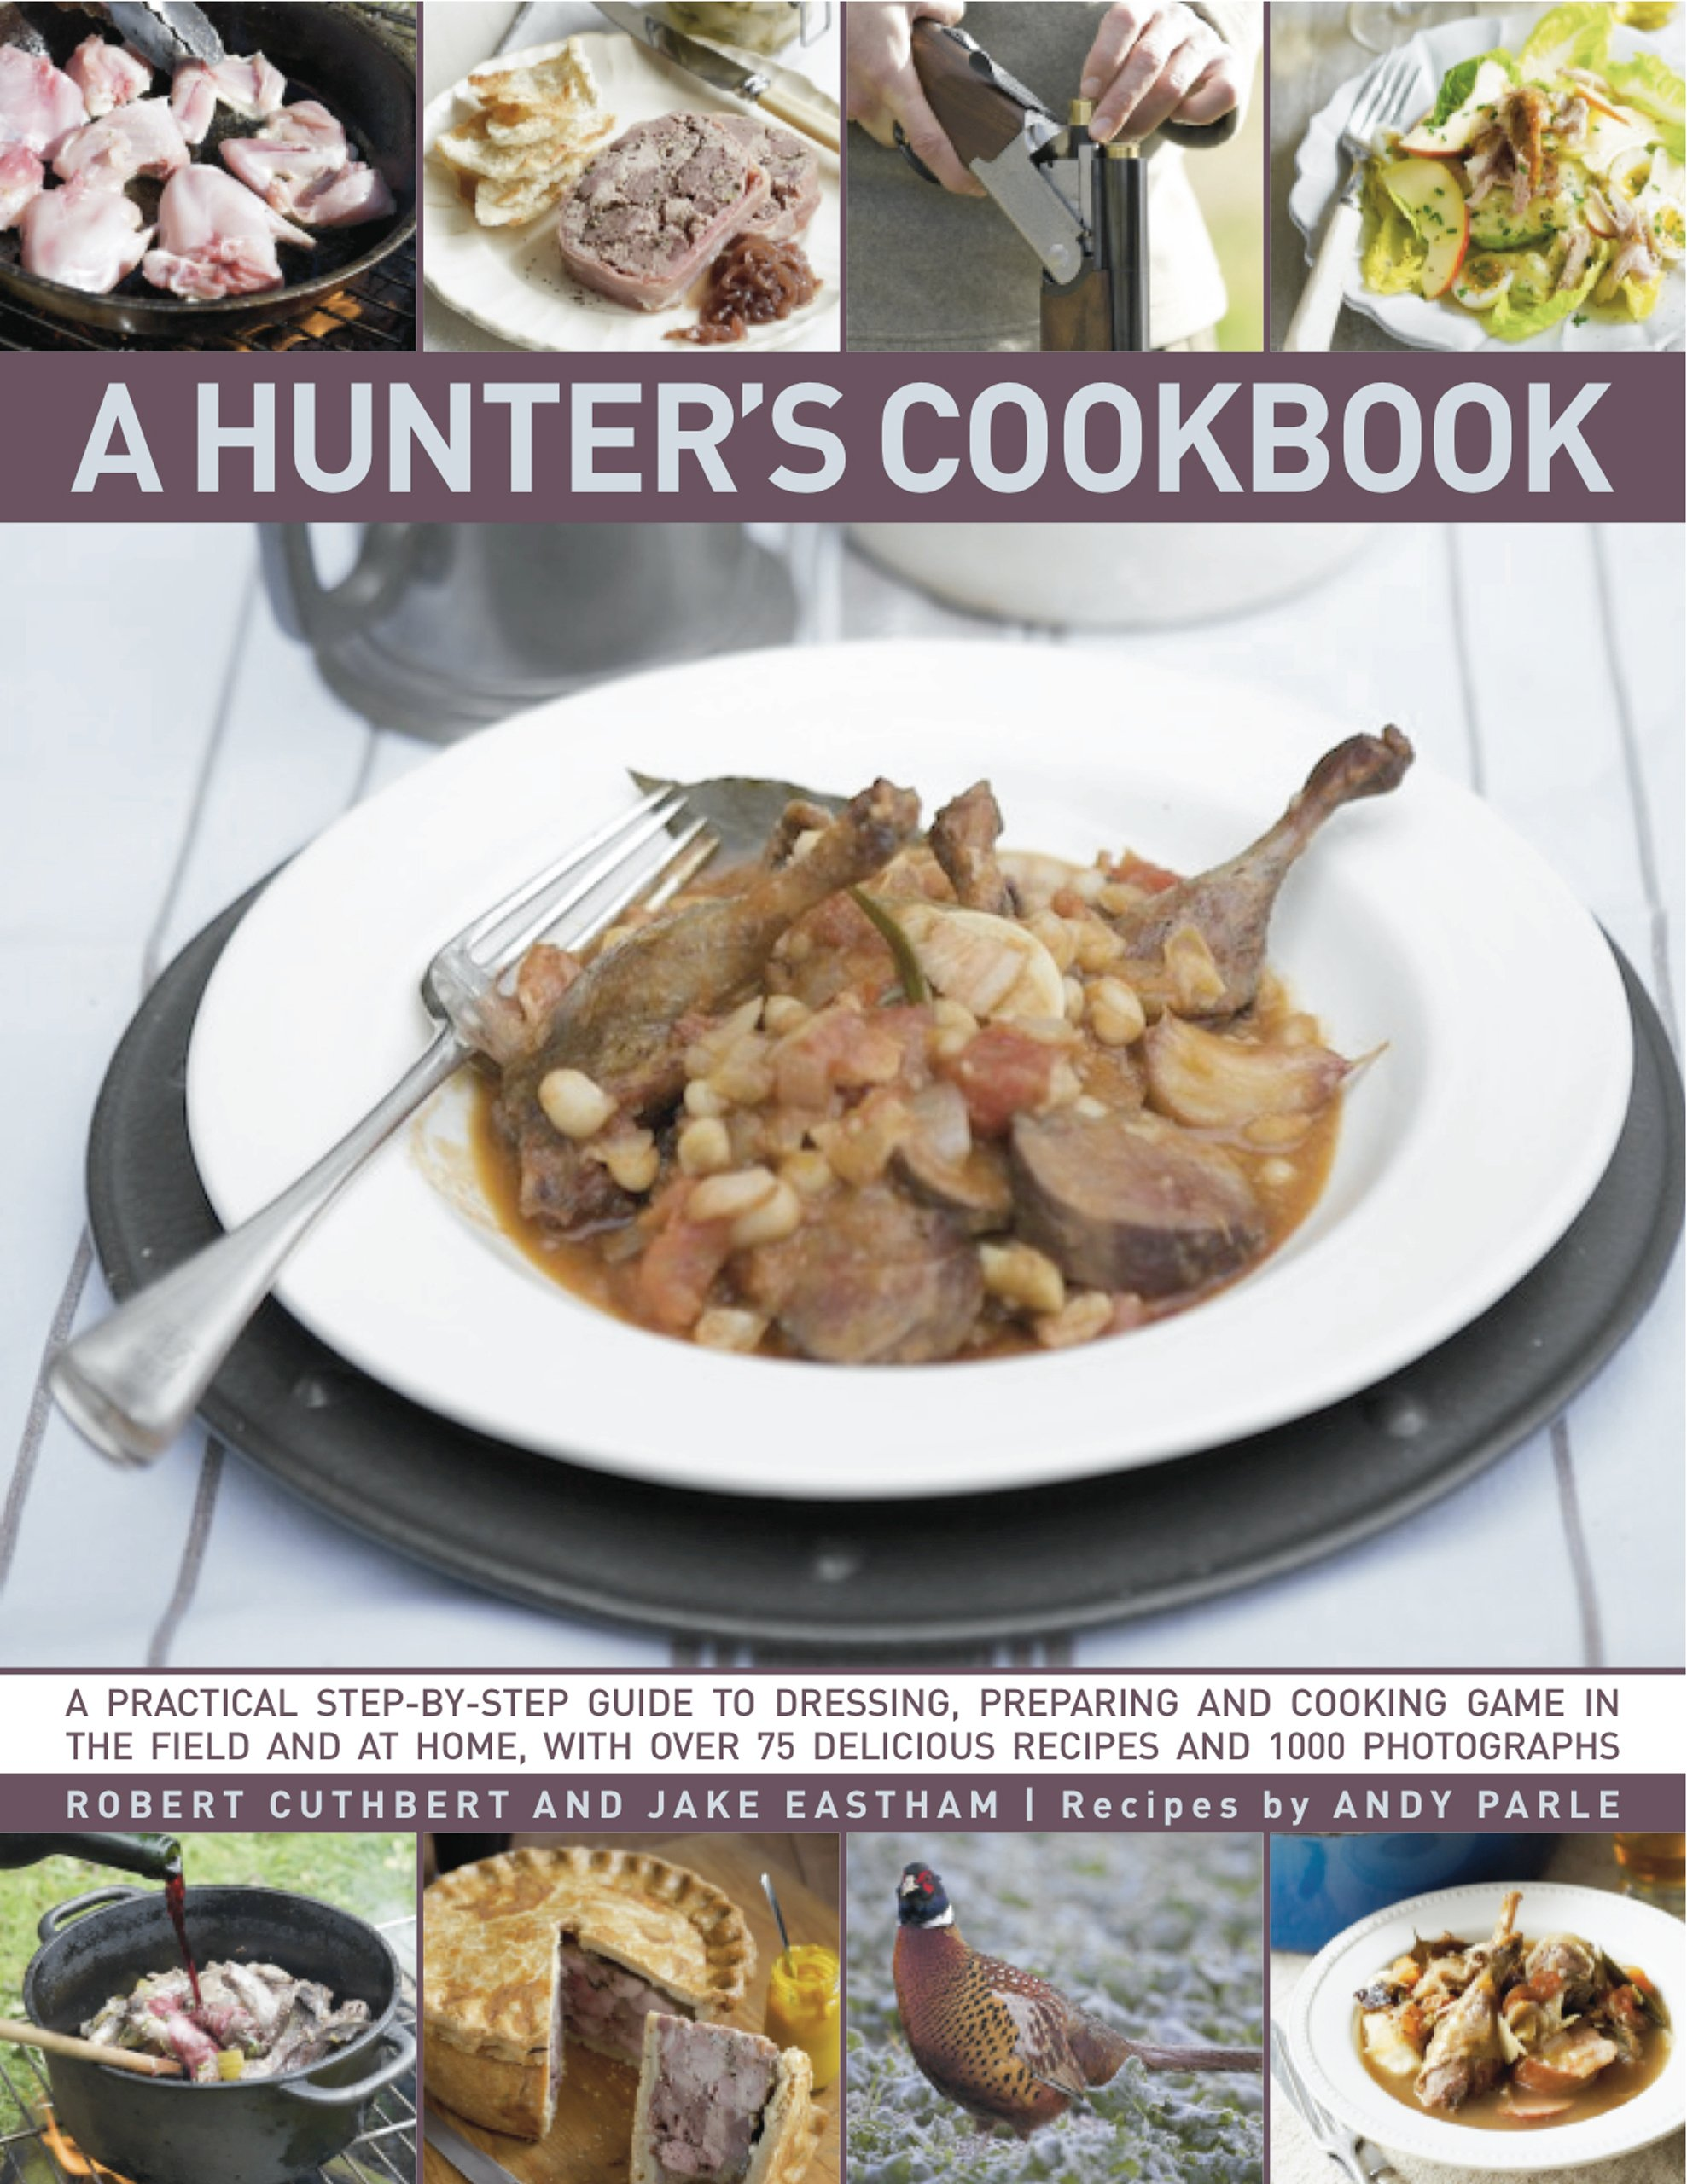 Download A Hunter's Cookbook: A Practical Step-By-Step Guide To Dressing, Preparing And Cooking Game, In The Field And At Home, With Over 75 Delicious Recipes And Over 1000 Photographs ebook